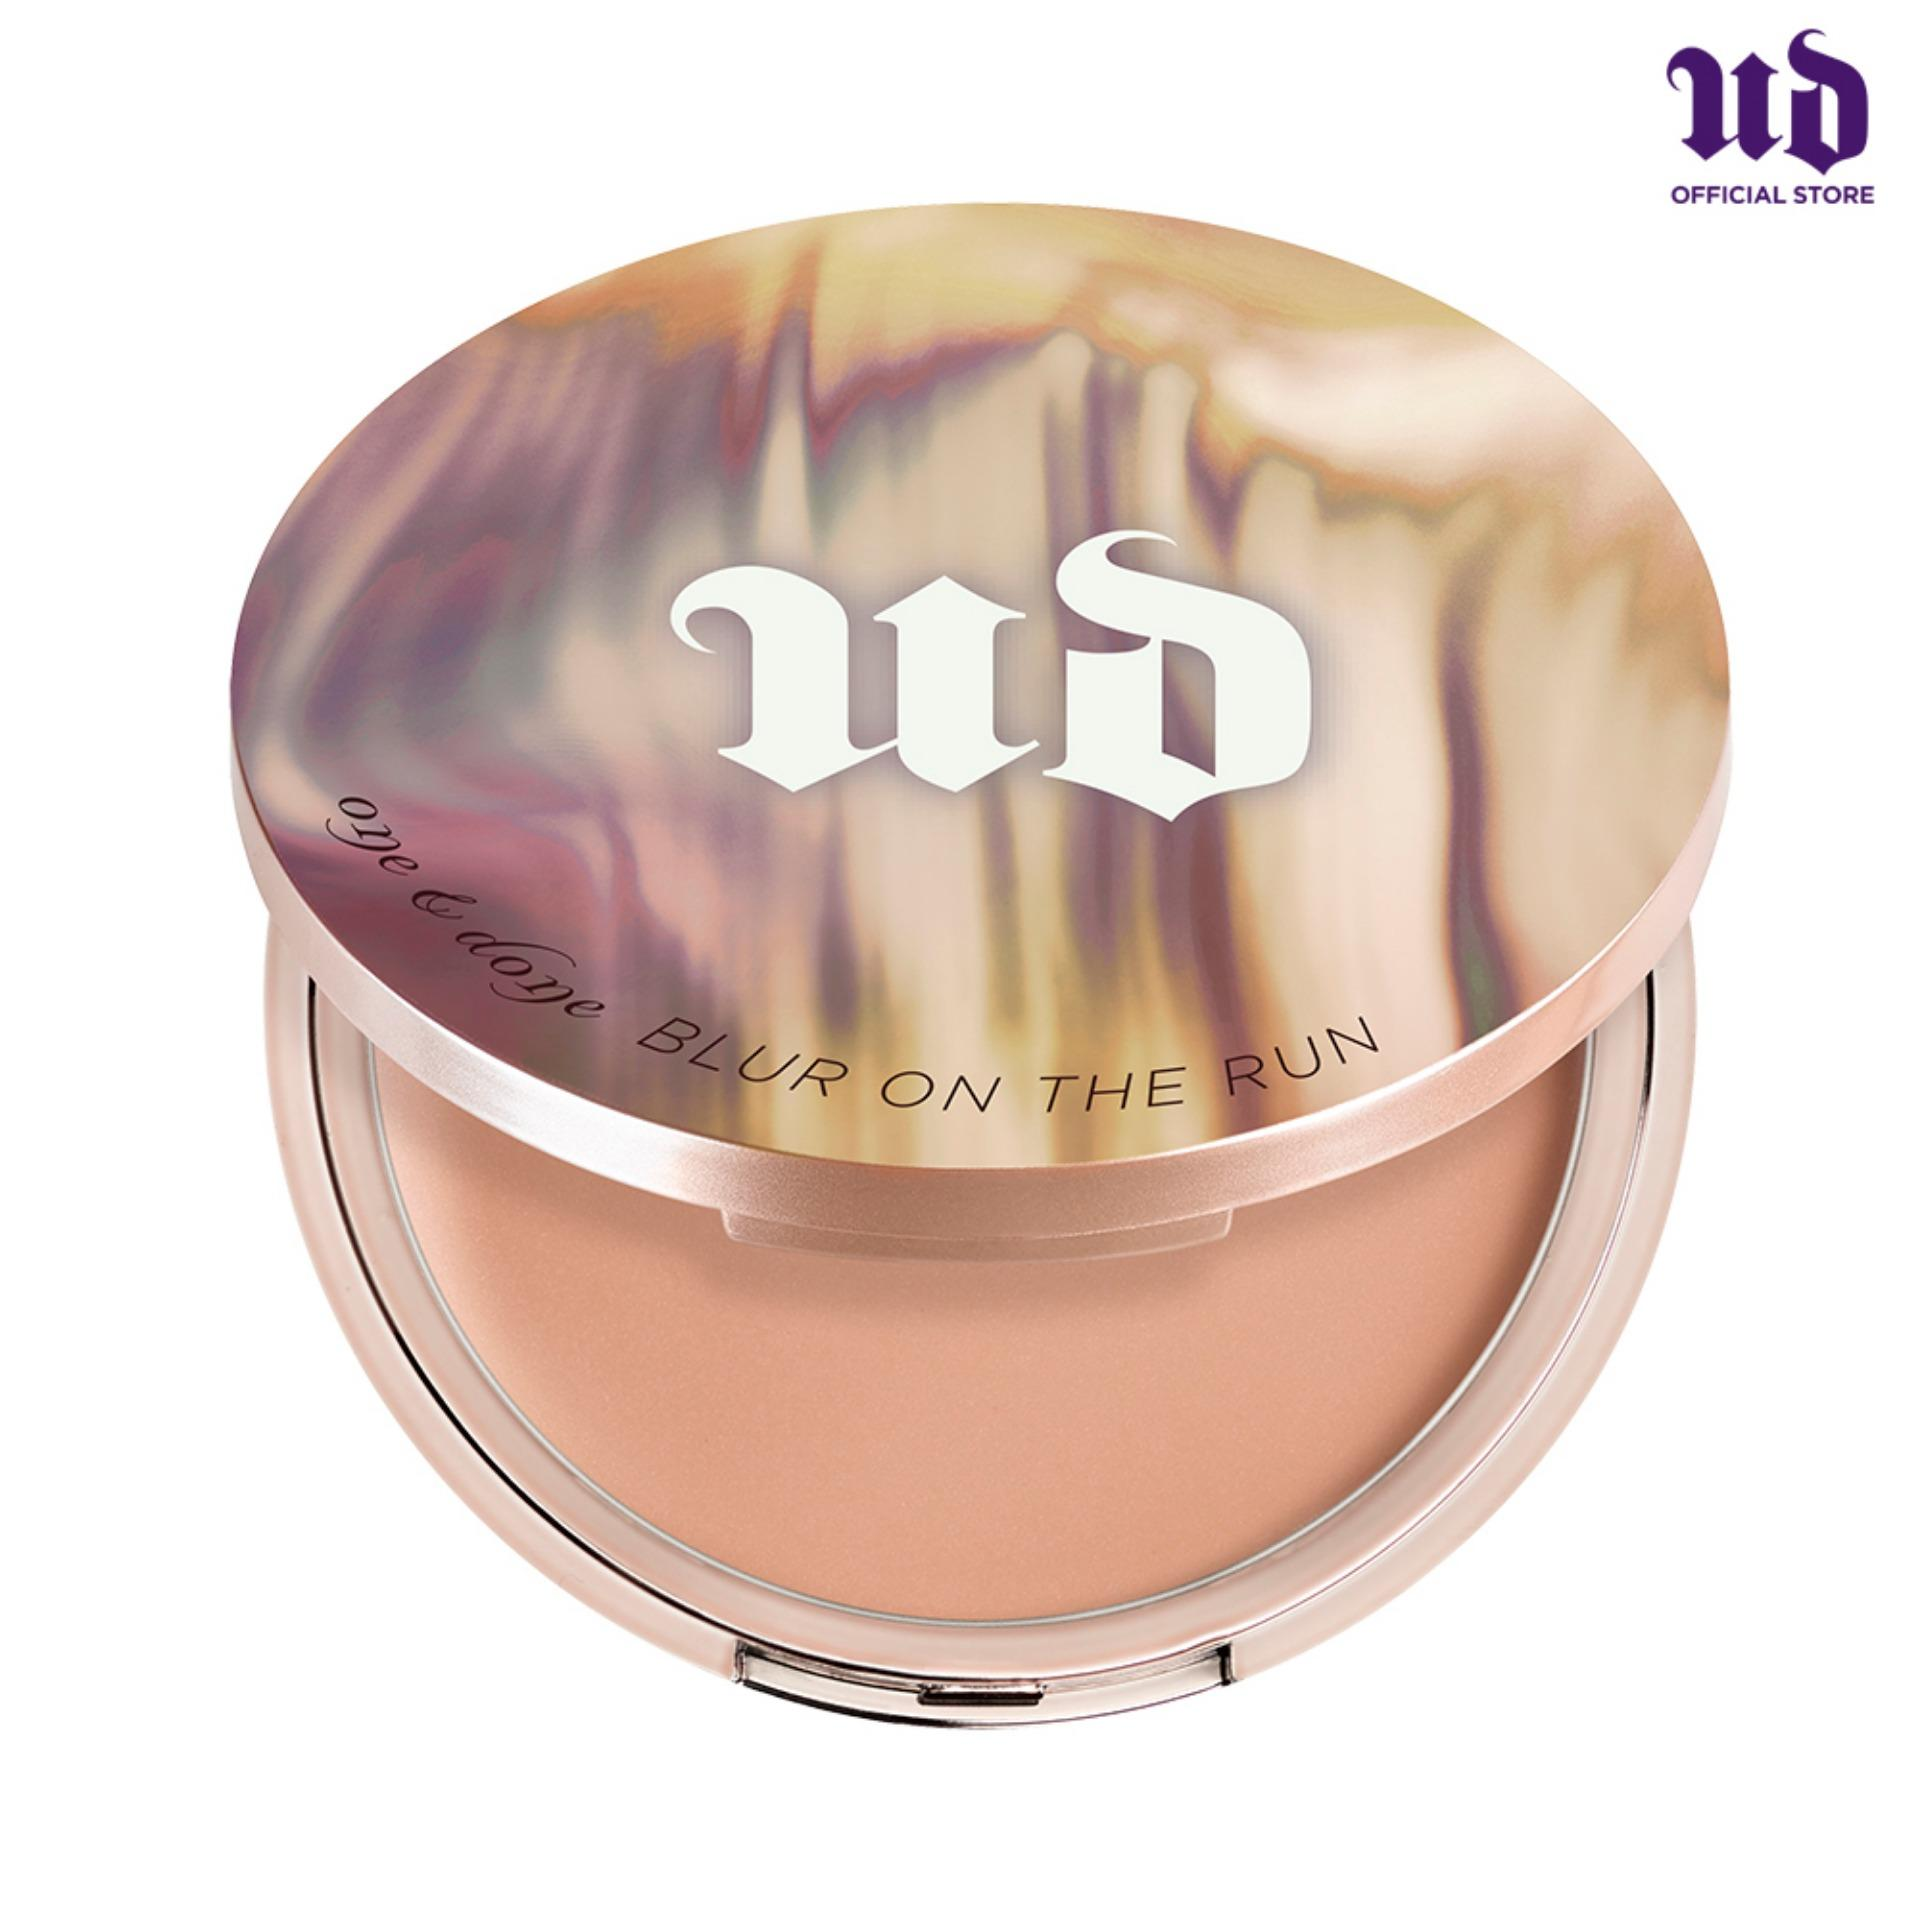 Urban Decay Naked Skin One and Done Blur On The Run